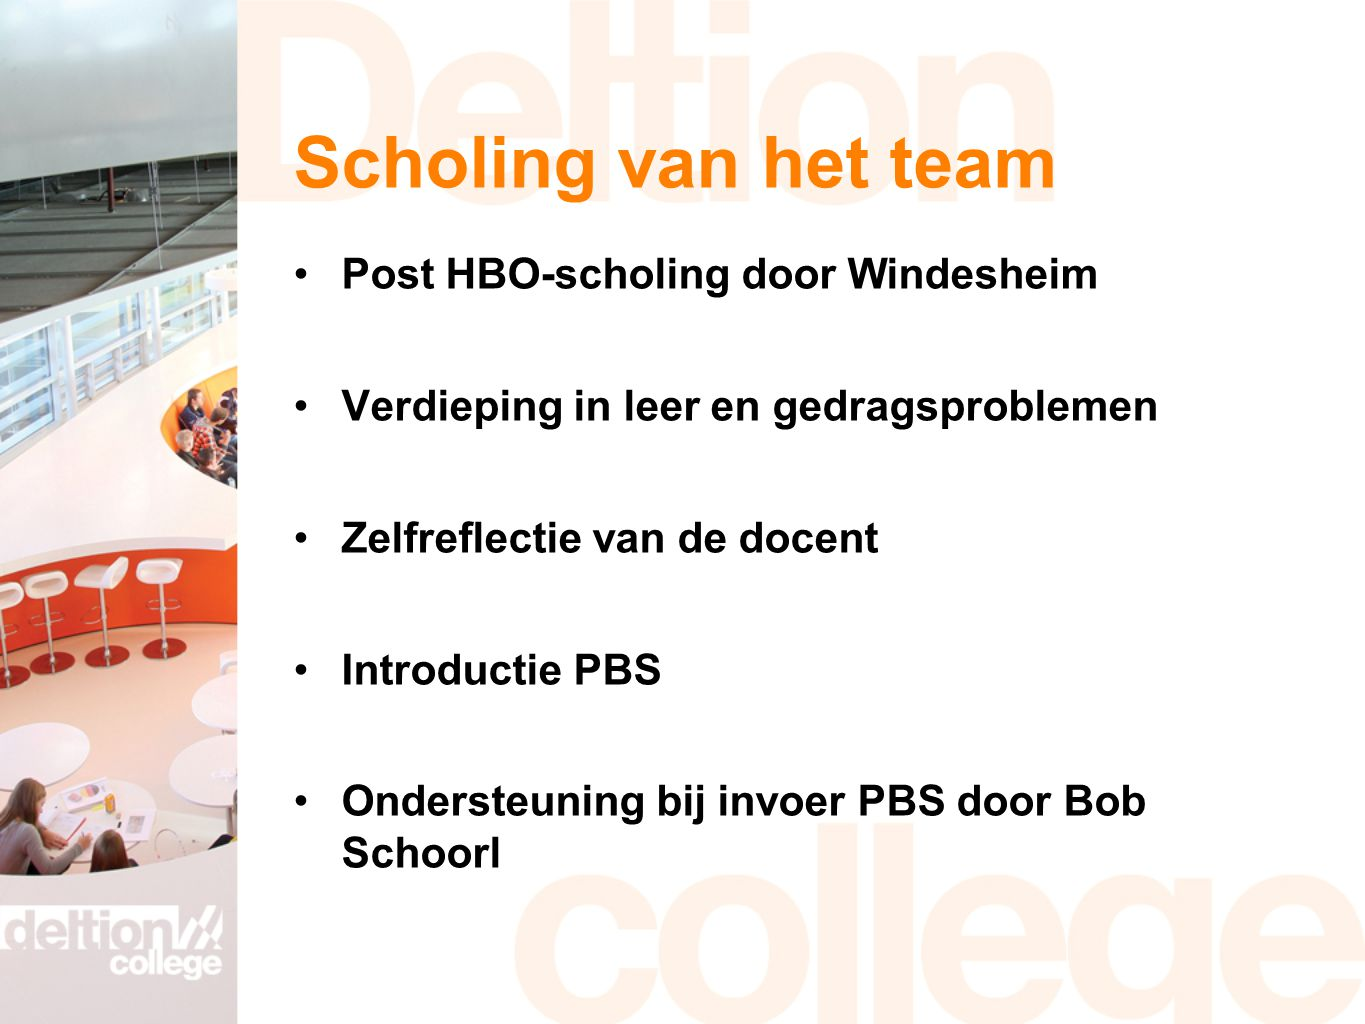 Scholing van het team Post HBO-scholing door Windesheim